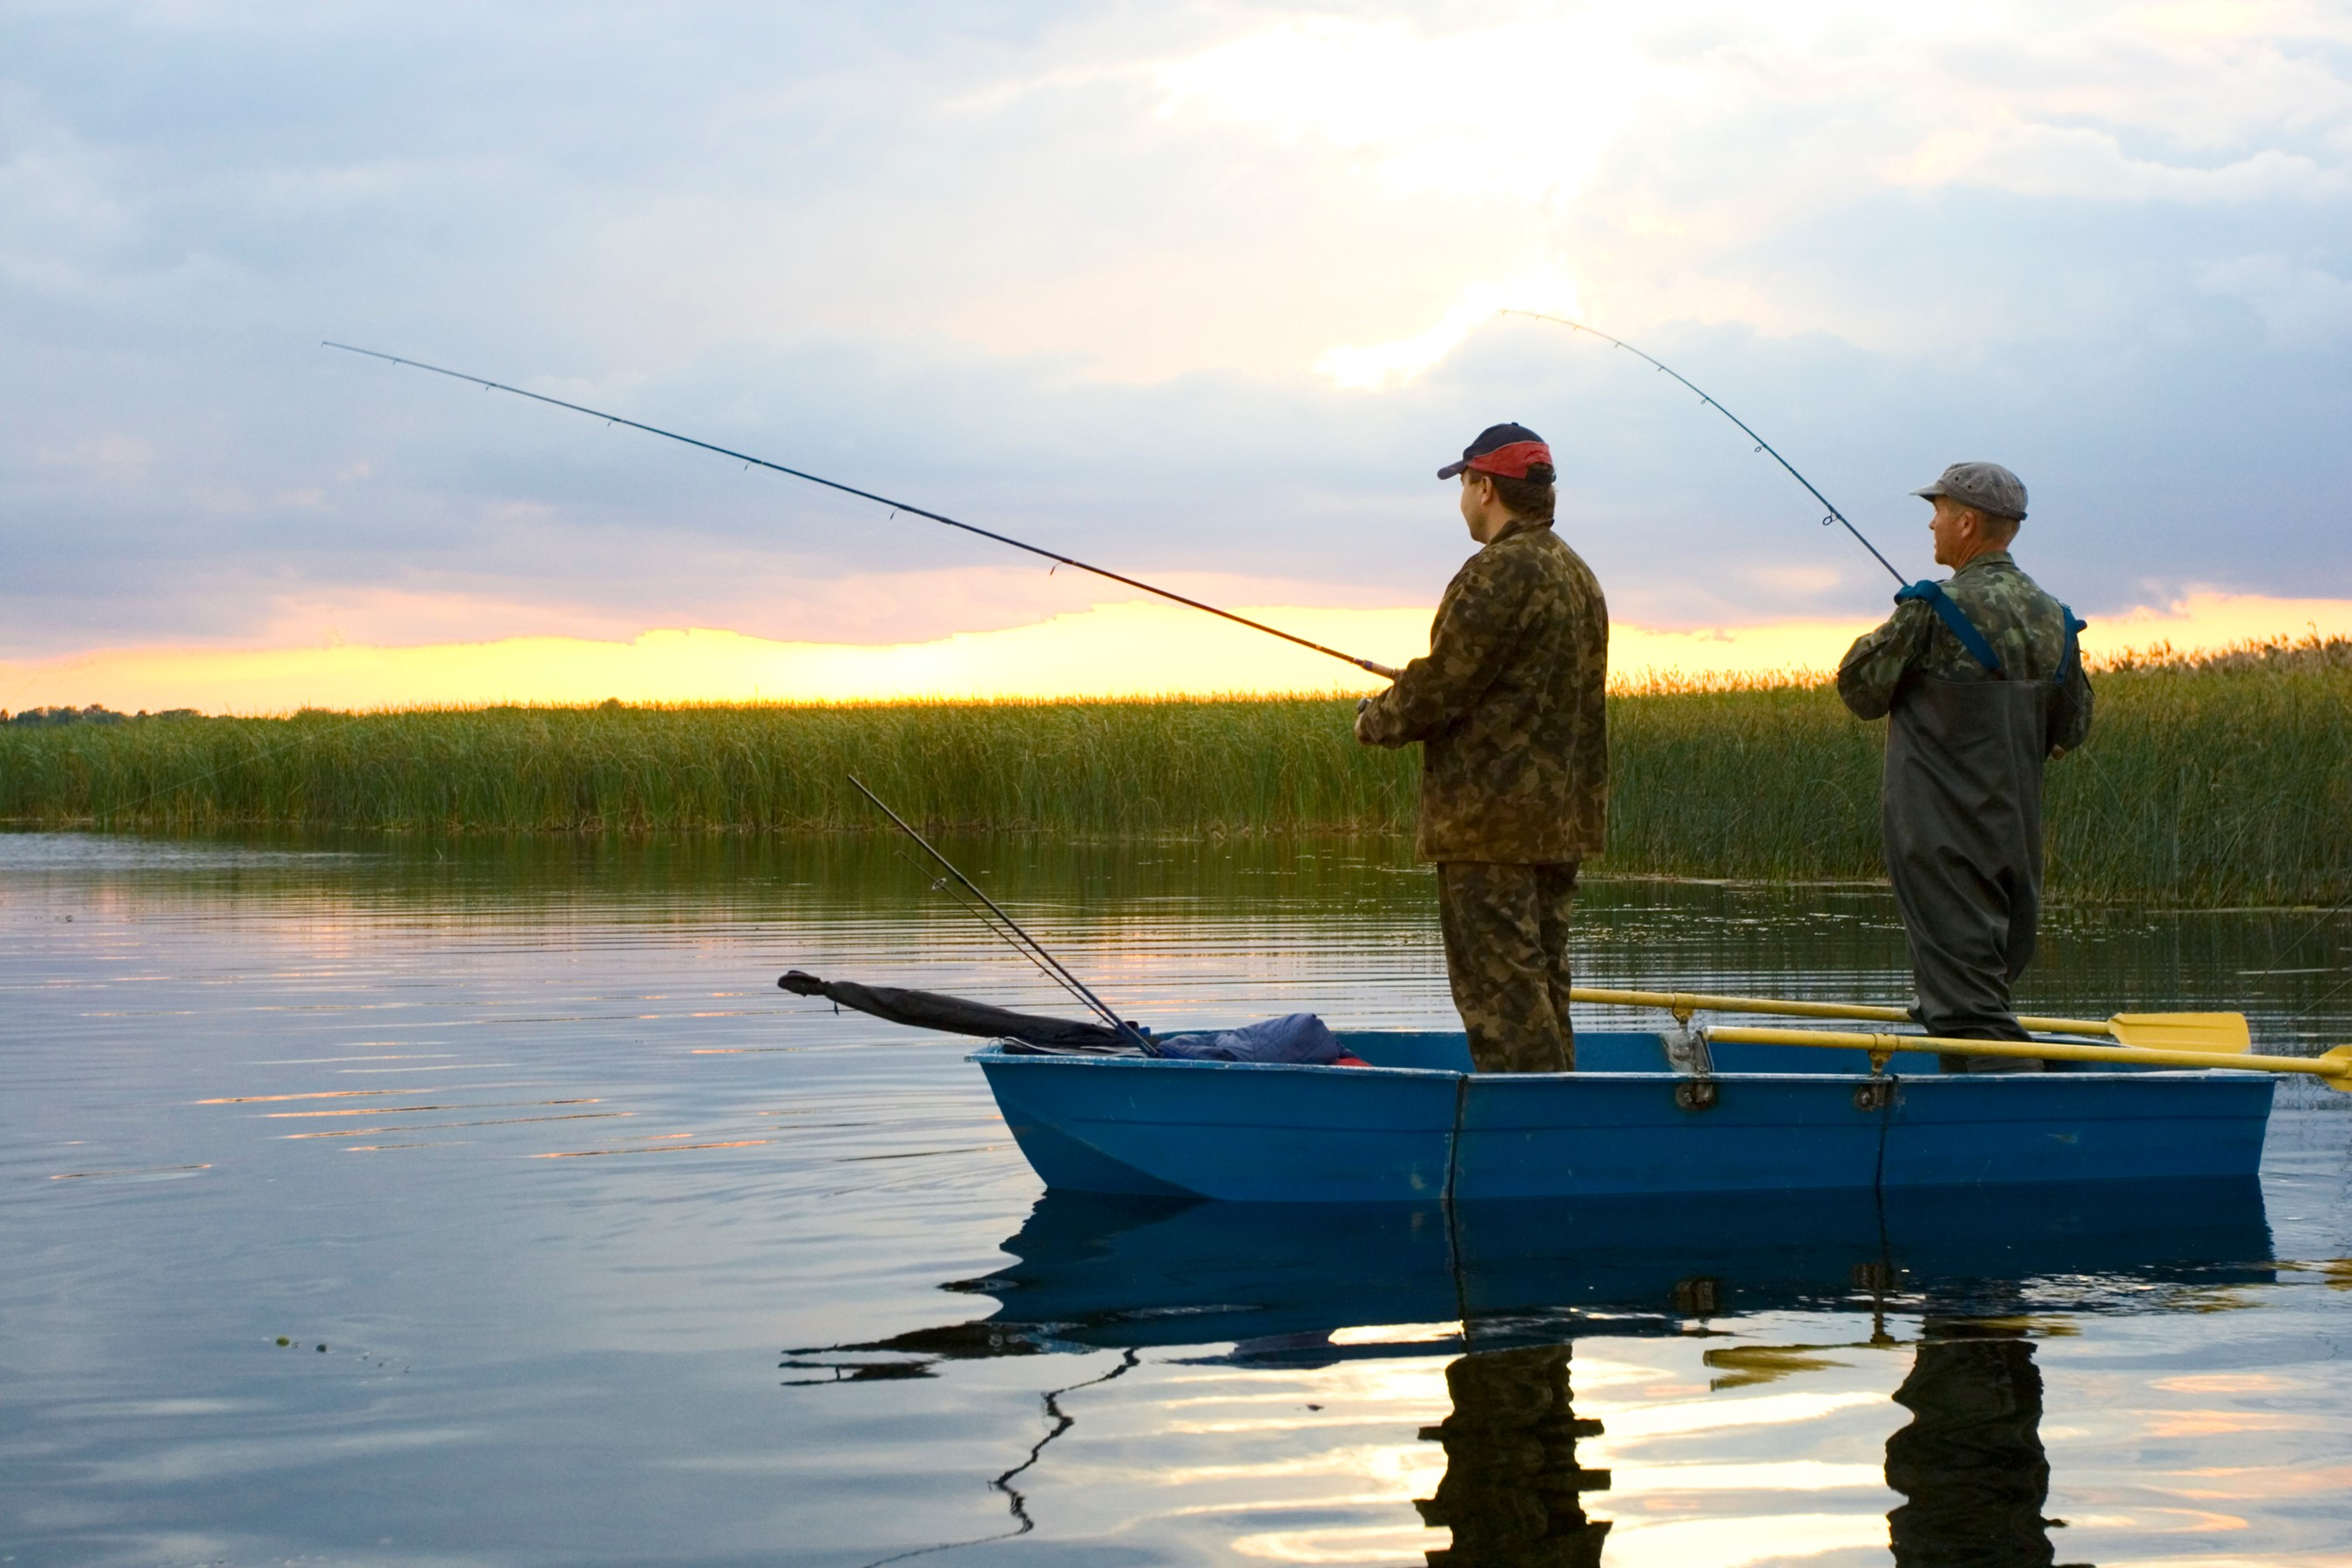 Fishermen casting lines at dusk.  Eating fish is one of the most common ways we're exposed to mercury.